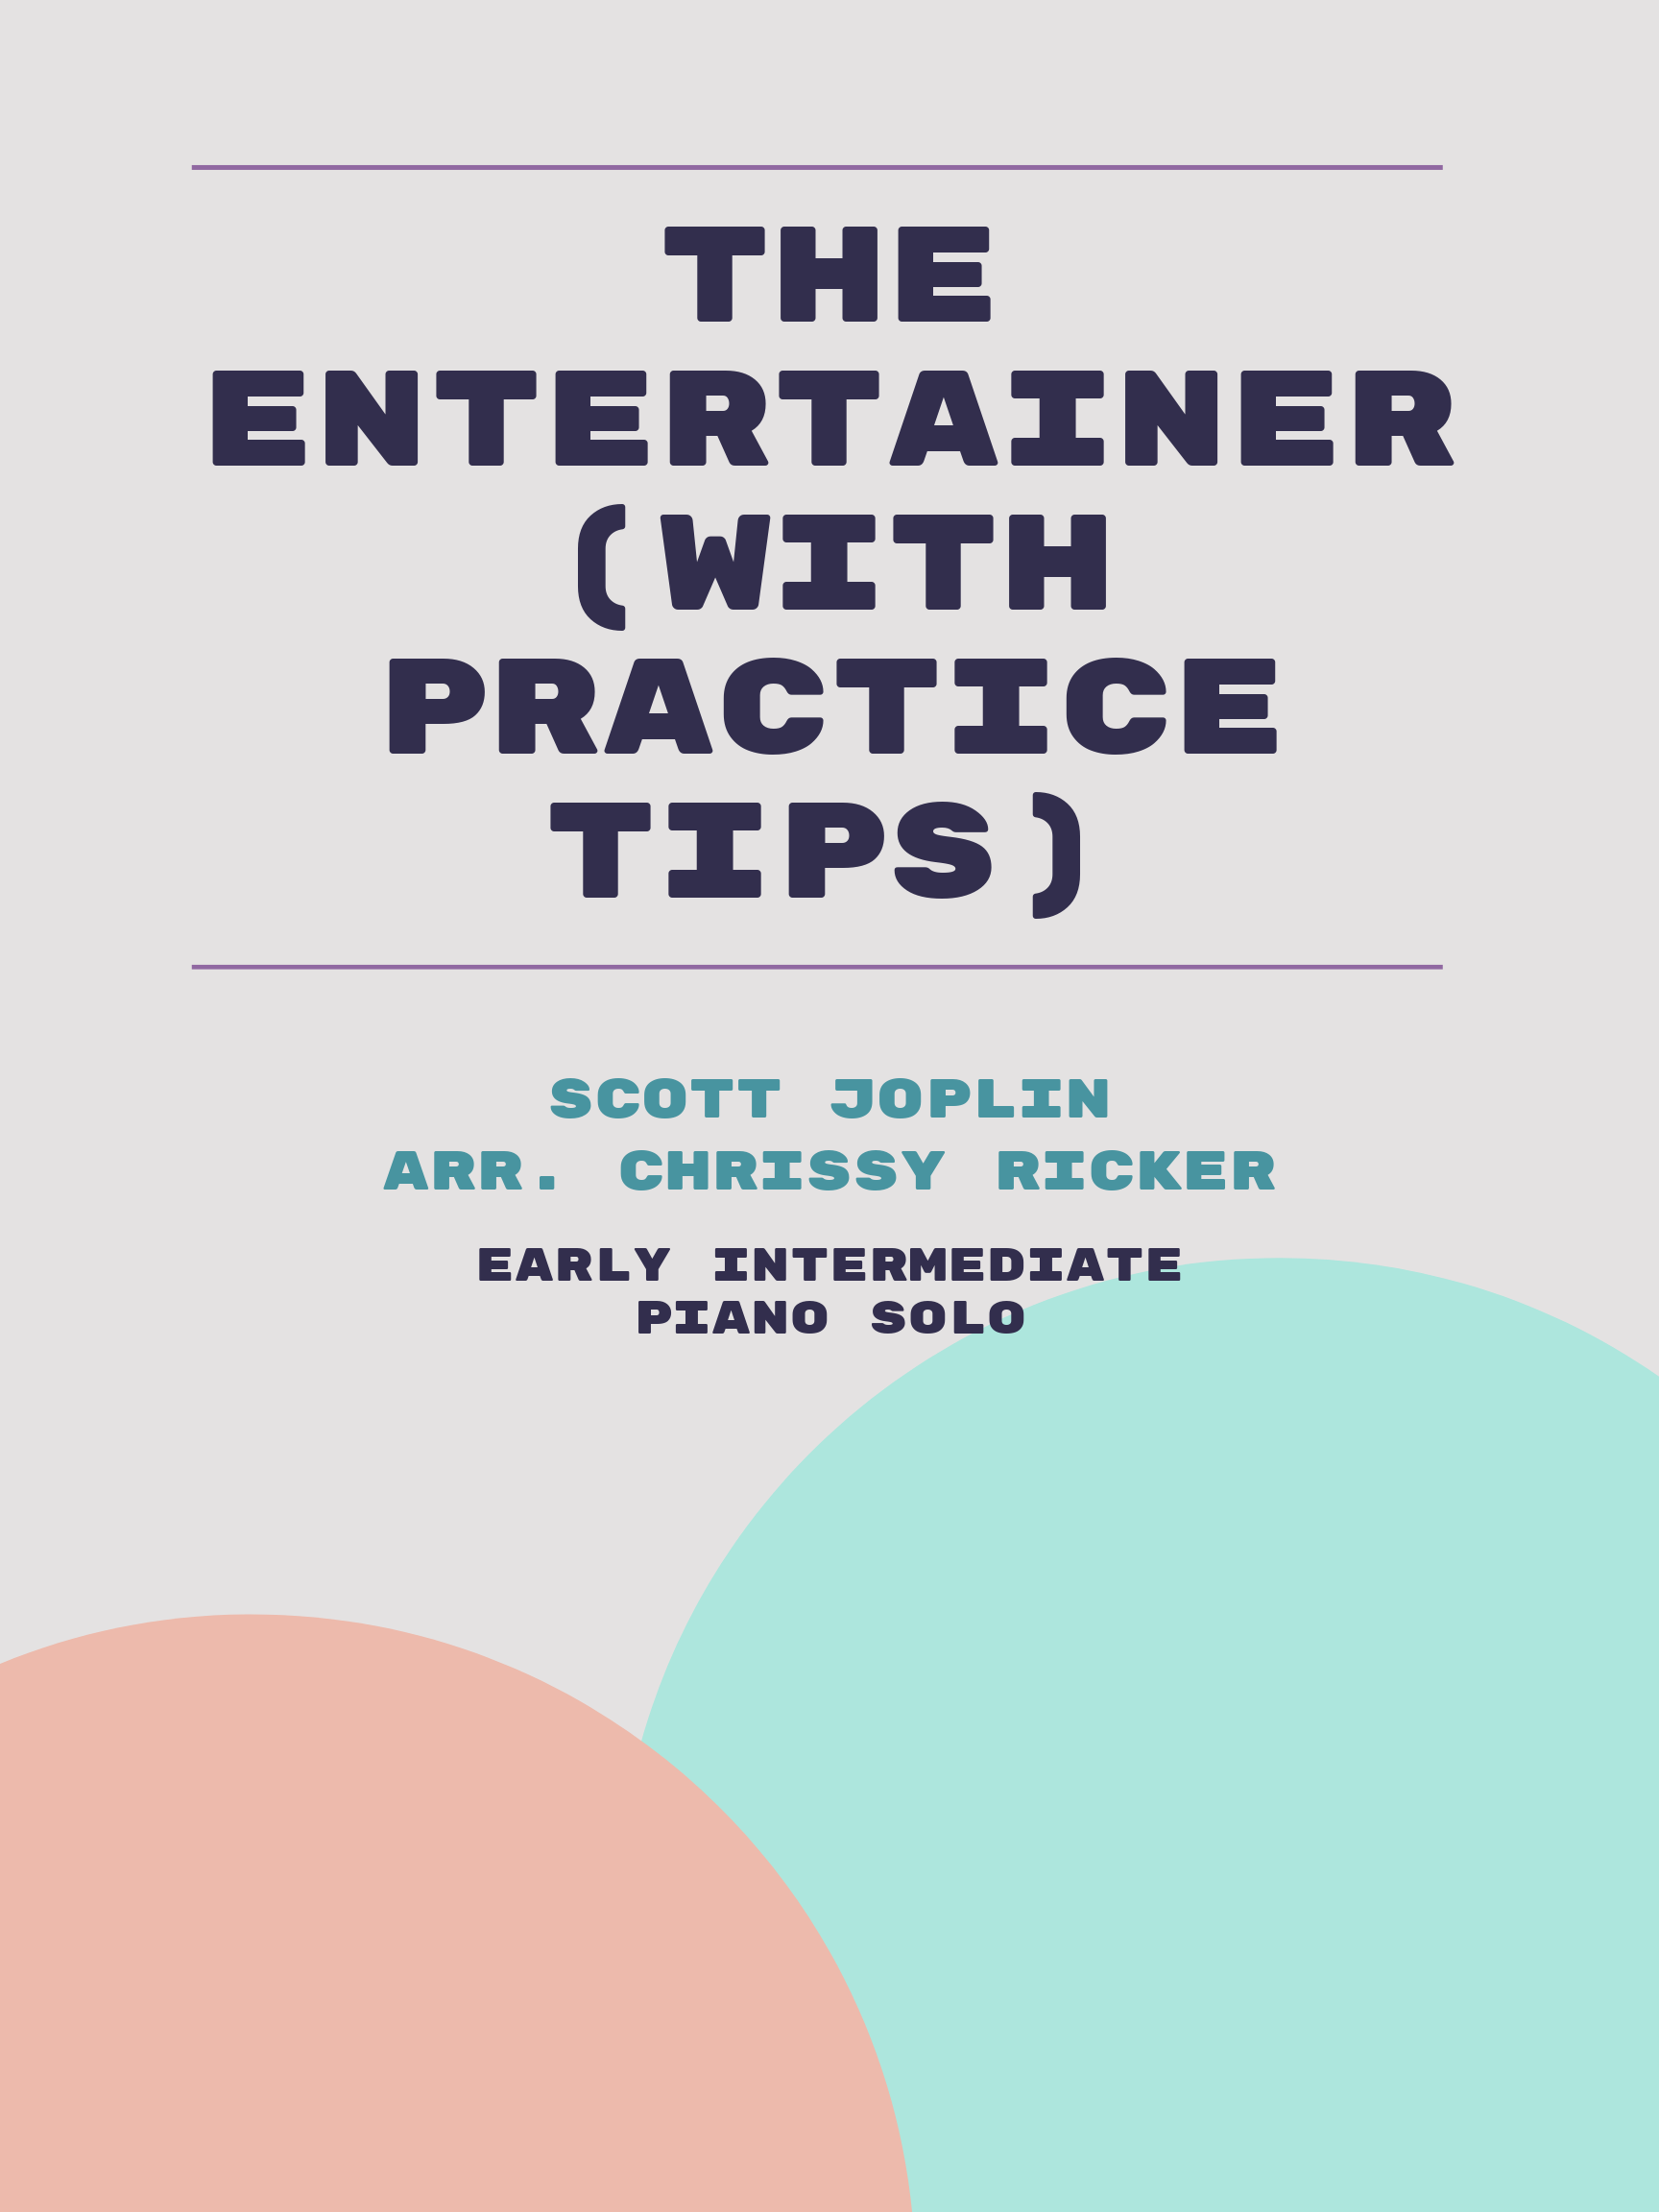 The Entertainer (with practice tips) by Scott Joplin